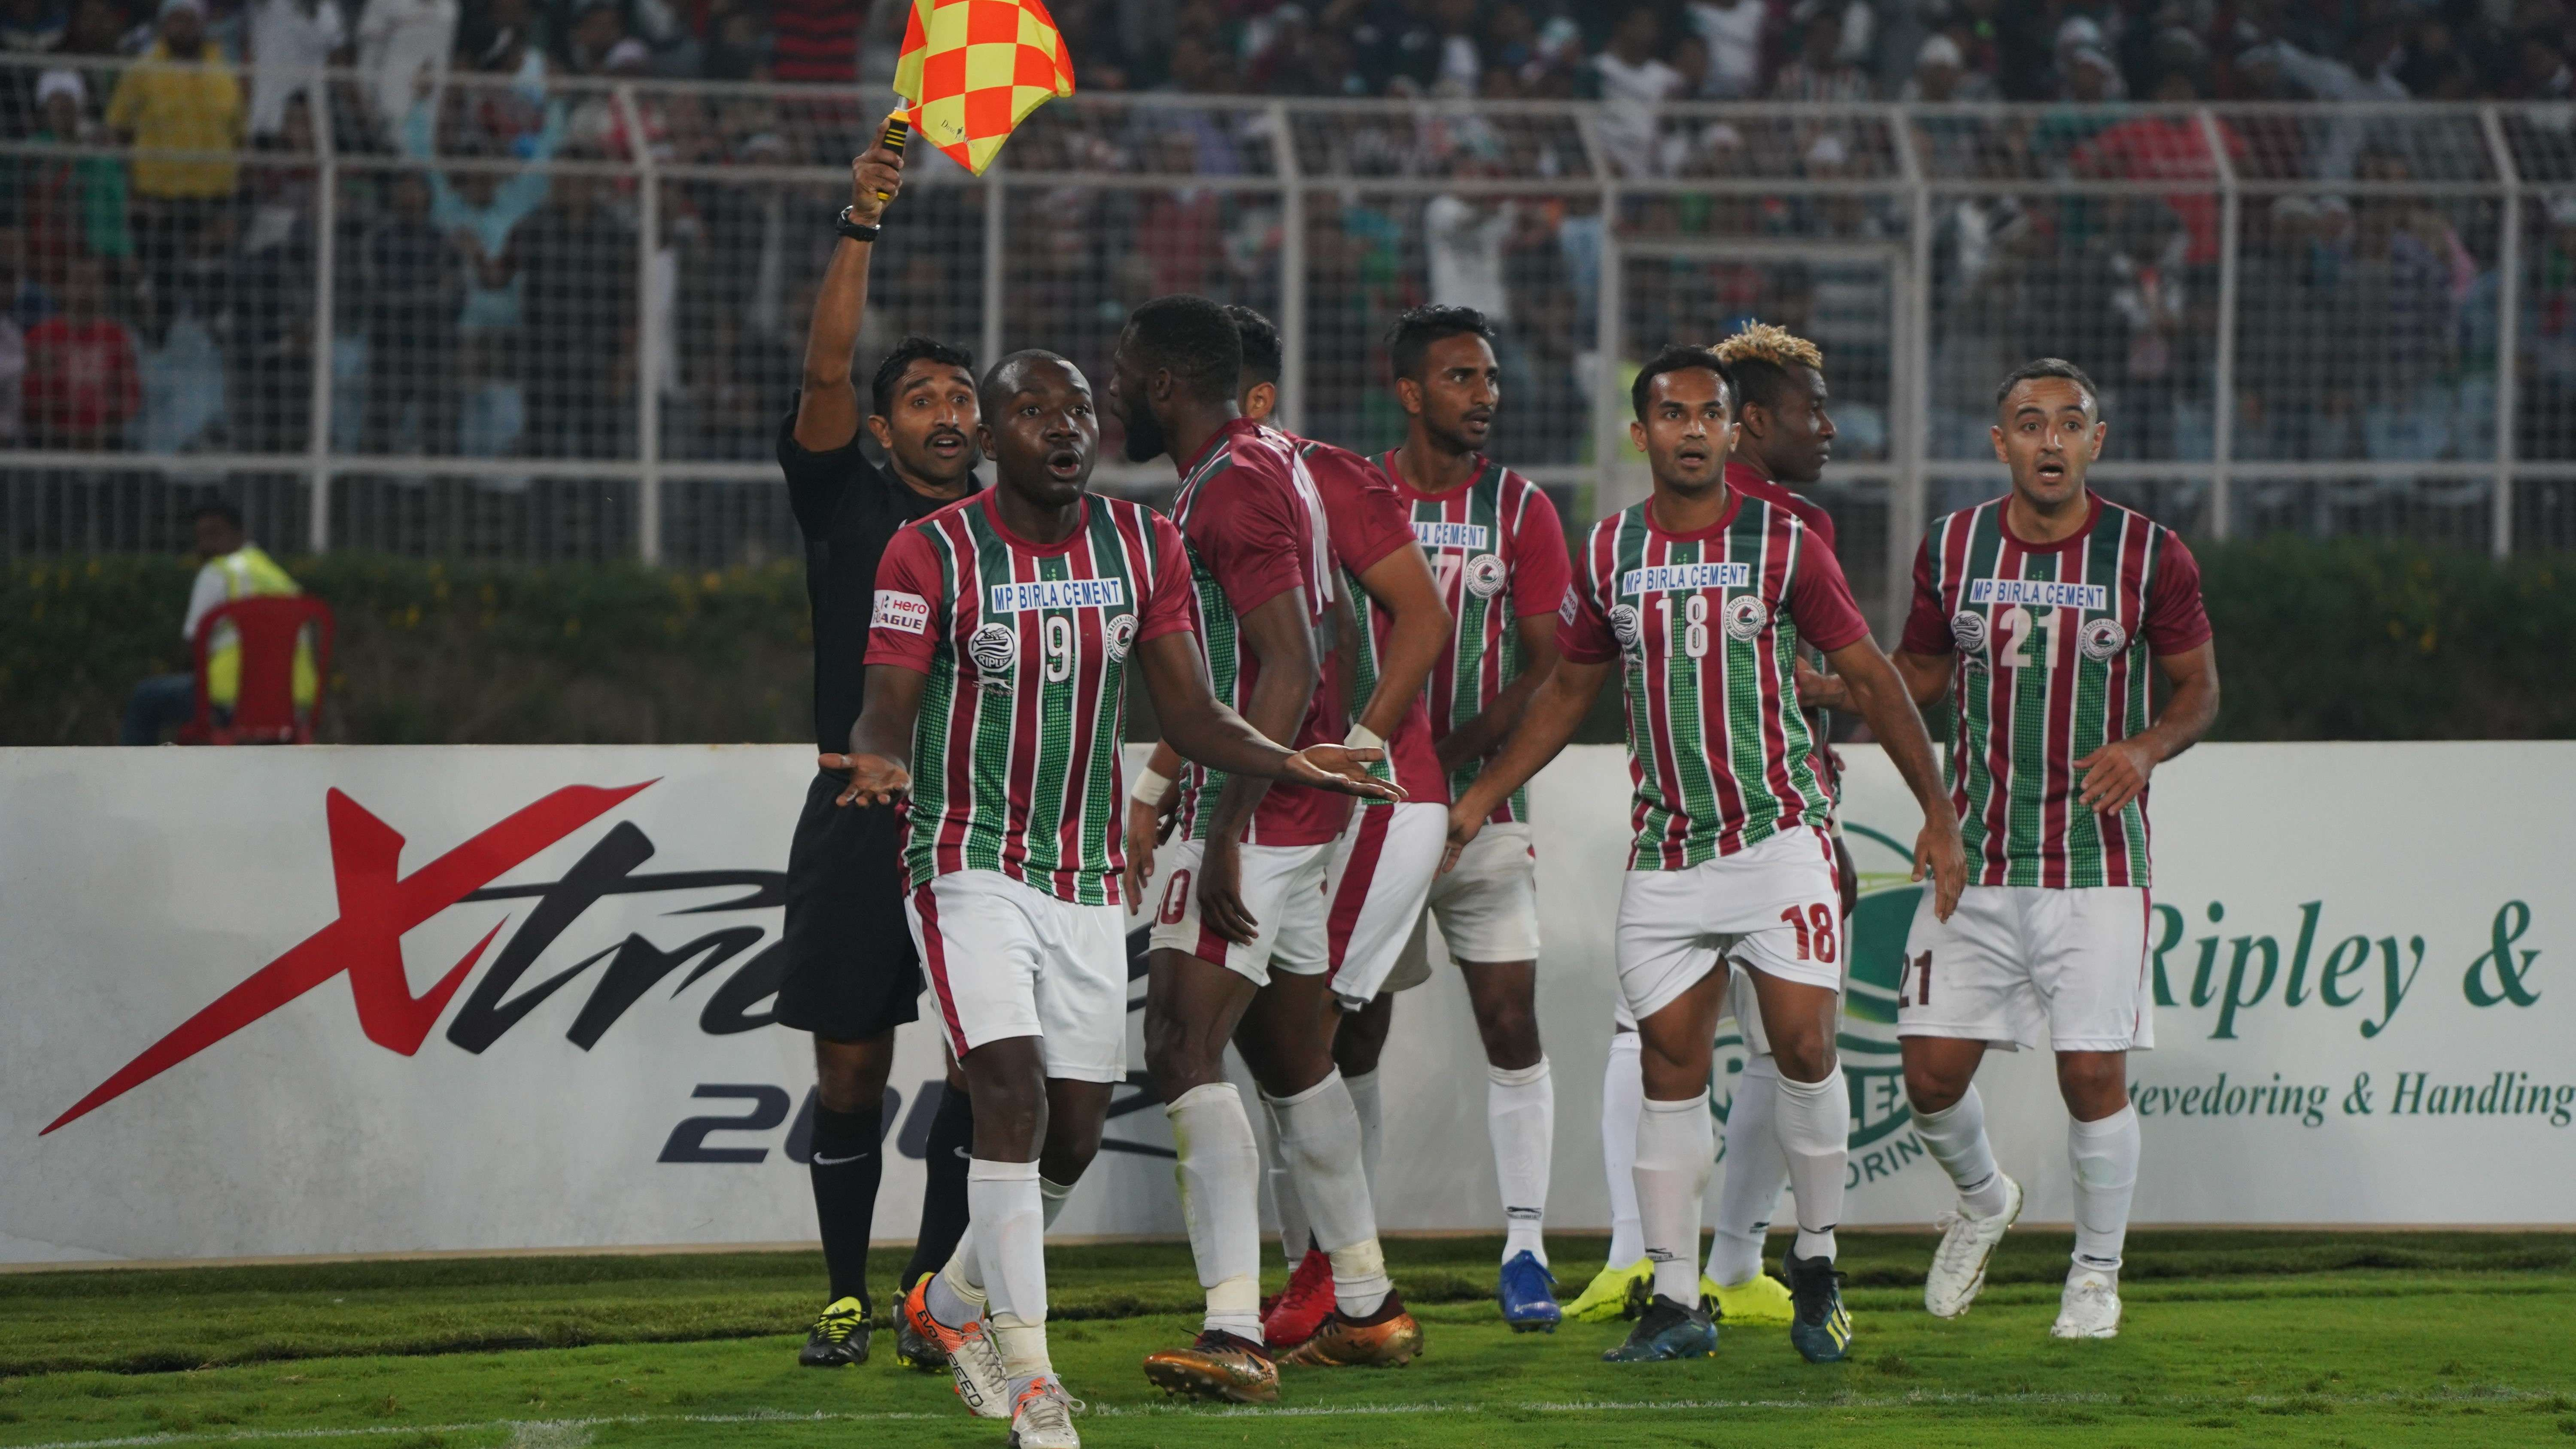 Mohun Bagan v East Bengal Match Report, 27/01/19, I-League | Goal com